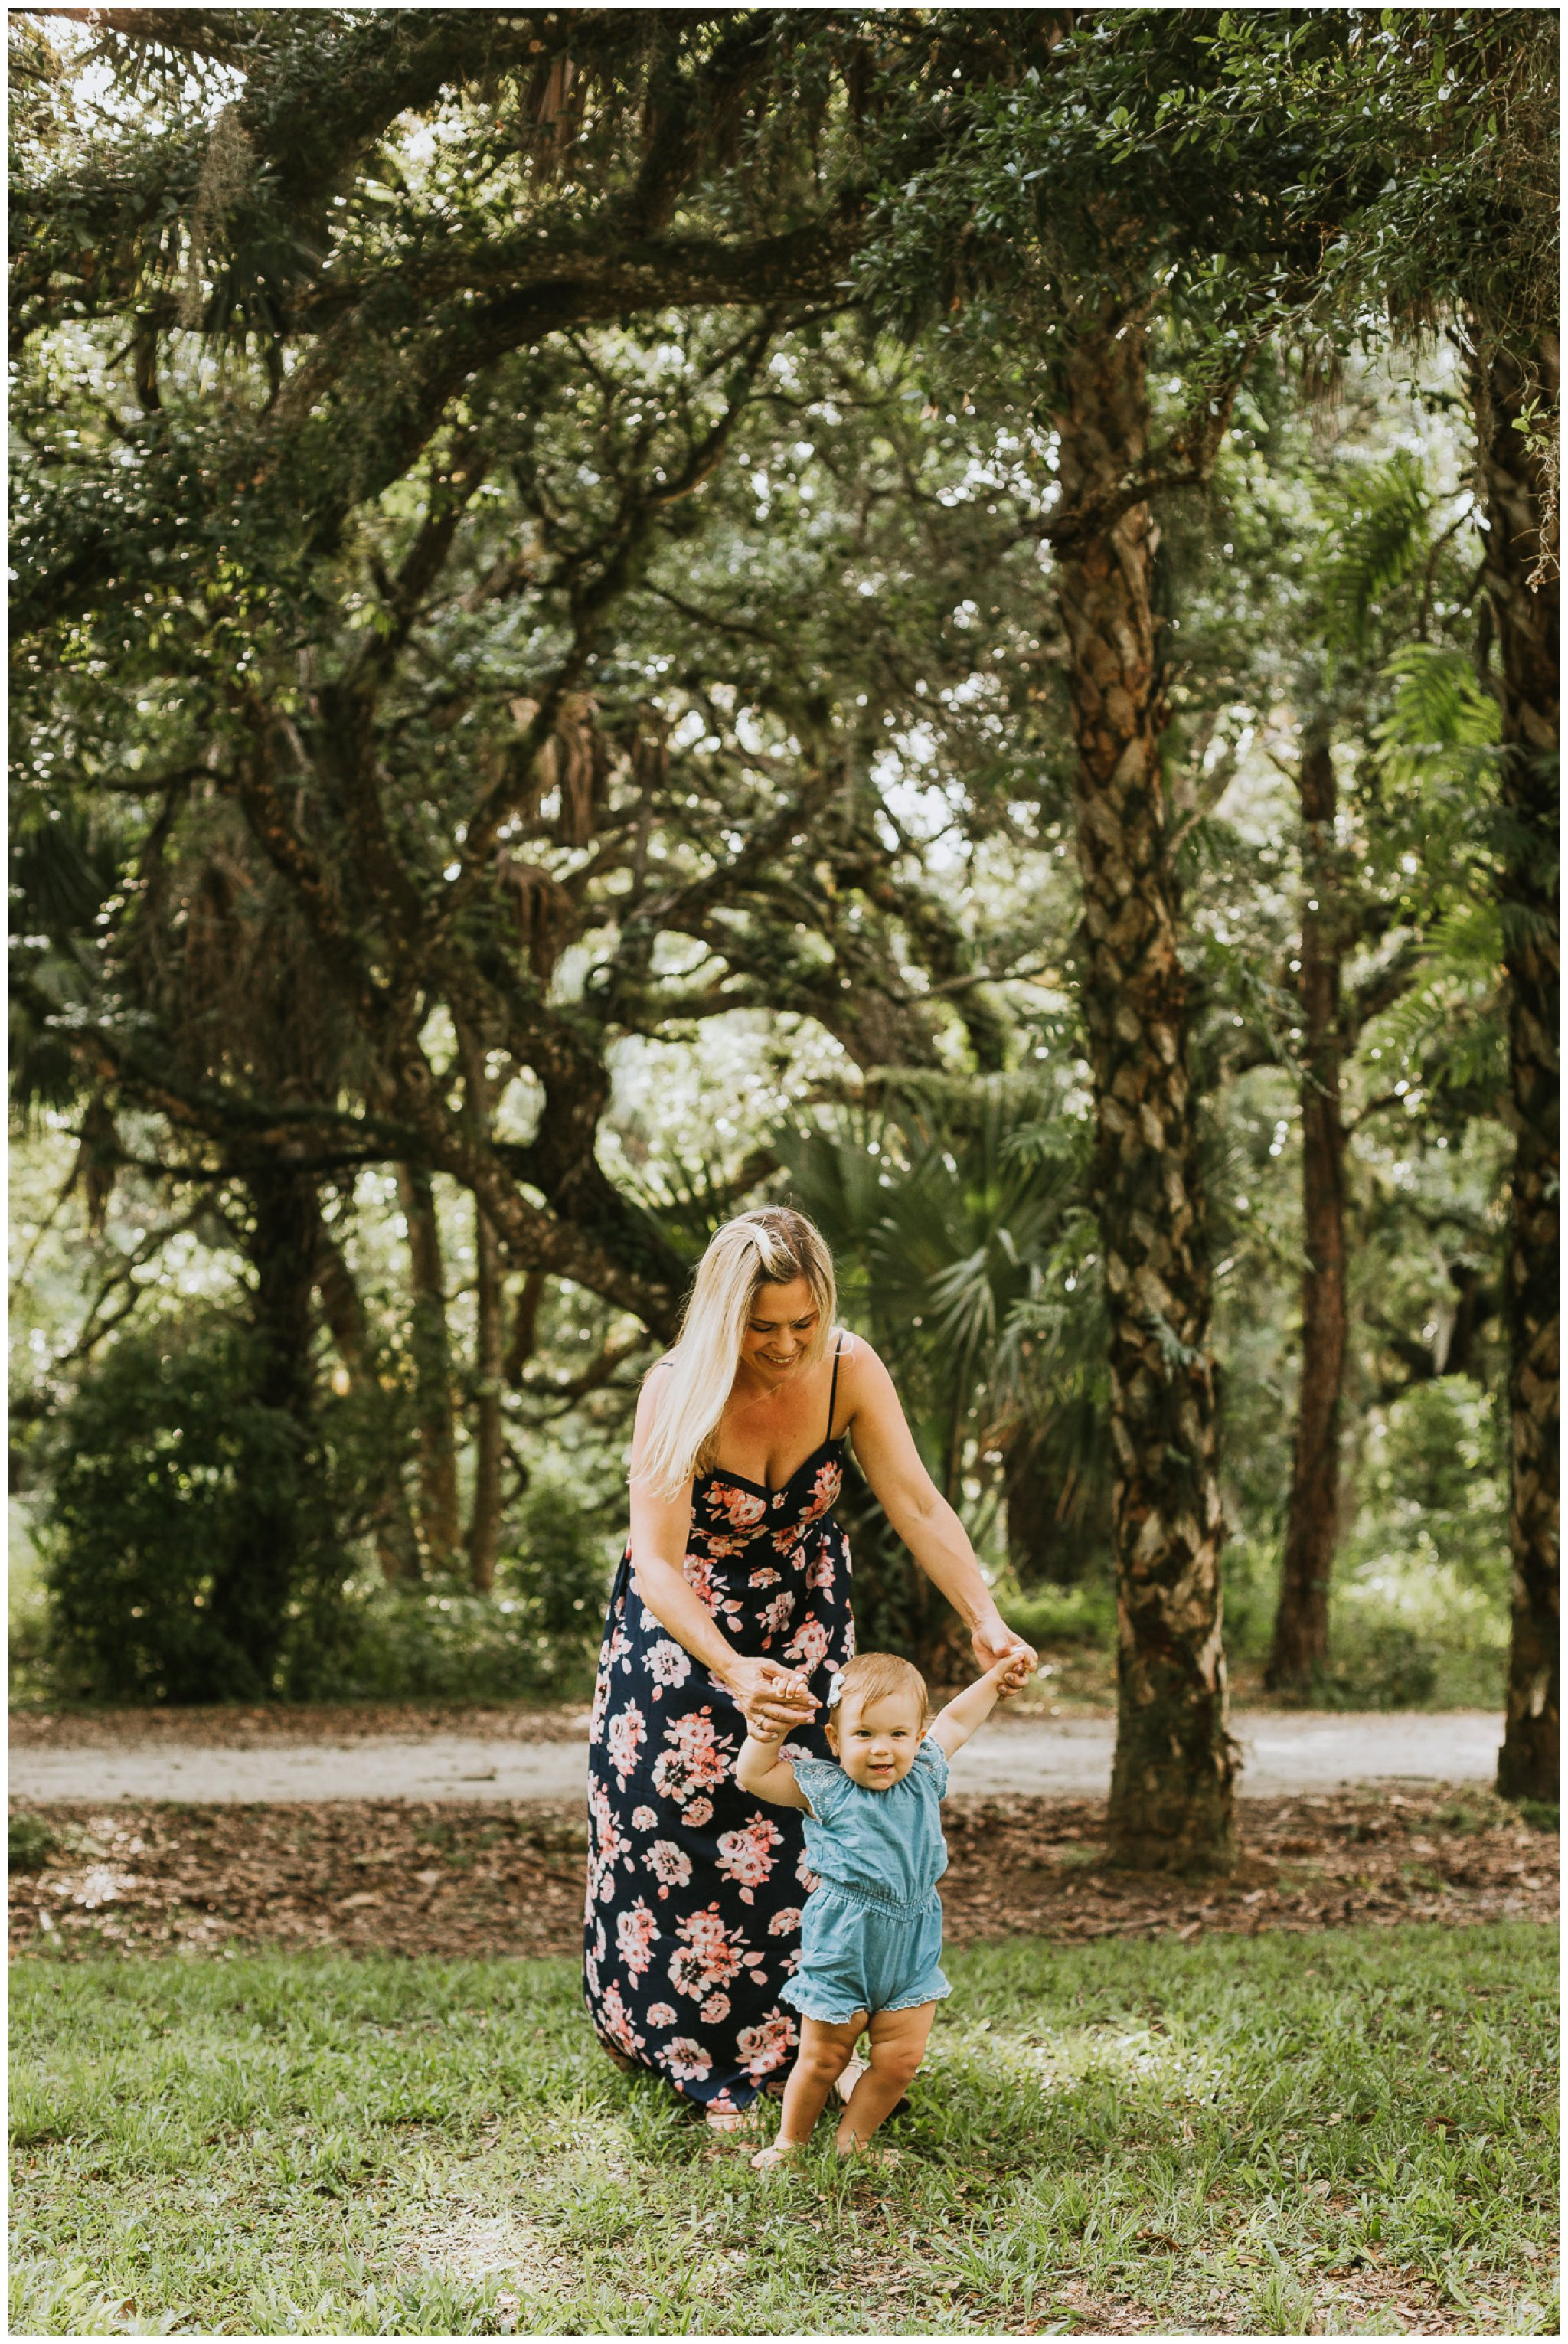 Kimberly Smith Photography| Jupiter Family Photography| Jupiter Florida Photographers| Palm Beach Family Photographers| Palm Beach Photographers | Riverbend Park Family Photos | Riverbend Park_0058.jpg